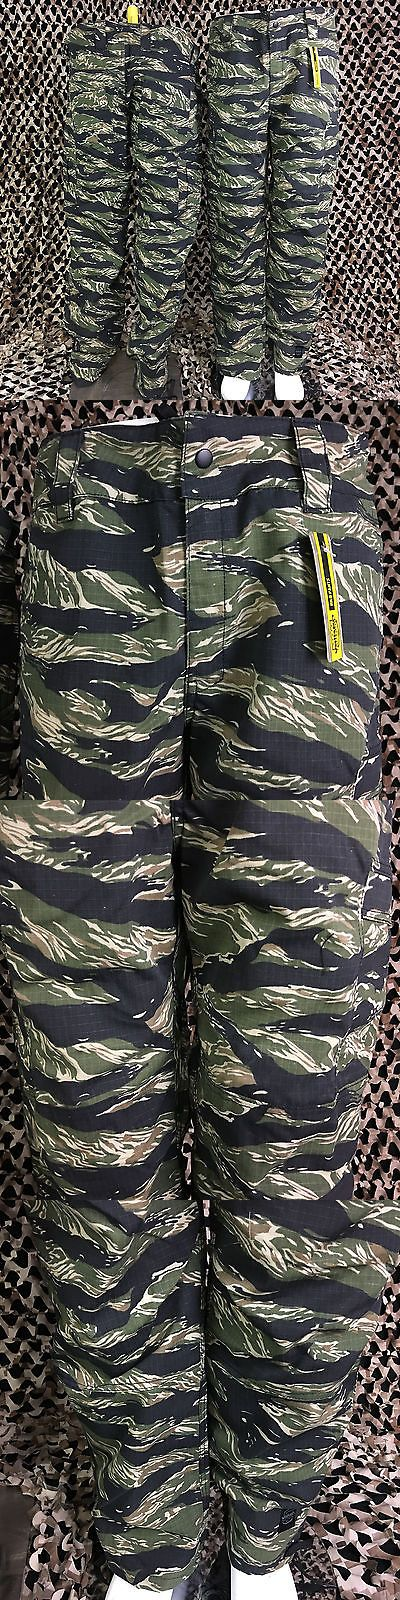 Pants and Shorts 165940: New Valken V-Tac Kilo Tactical Combat Paintball Pants - Tiger Stripe Camo -> BUY IT NOW ONLY: $49.95 on eBay!